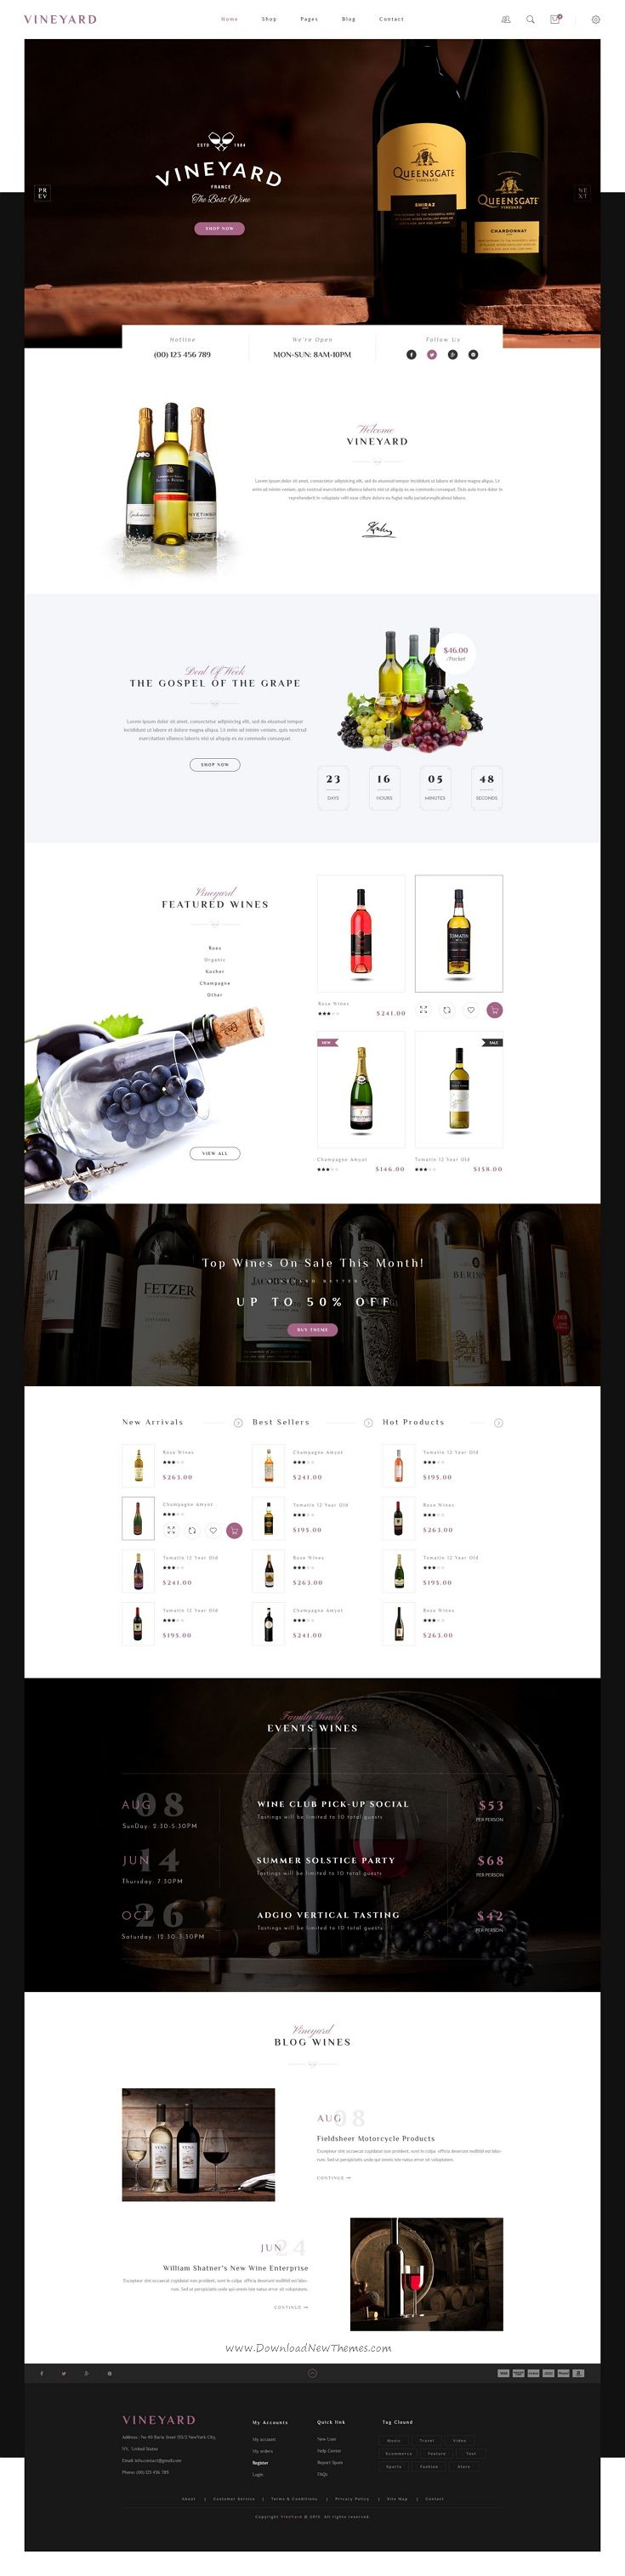 Vineyard is a super clean and modern Responsive WooCommerce WordPress Theme created specifically for wine lovers, wineries, #wineshop and #restaurant and style bloggers around the globe. #webdesign